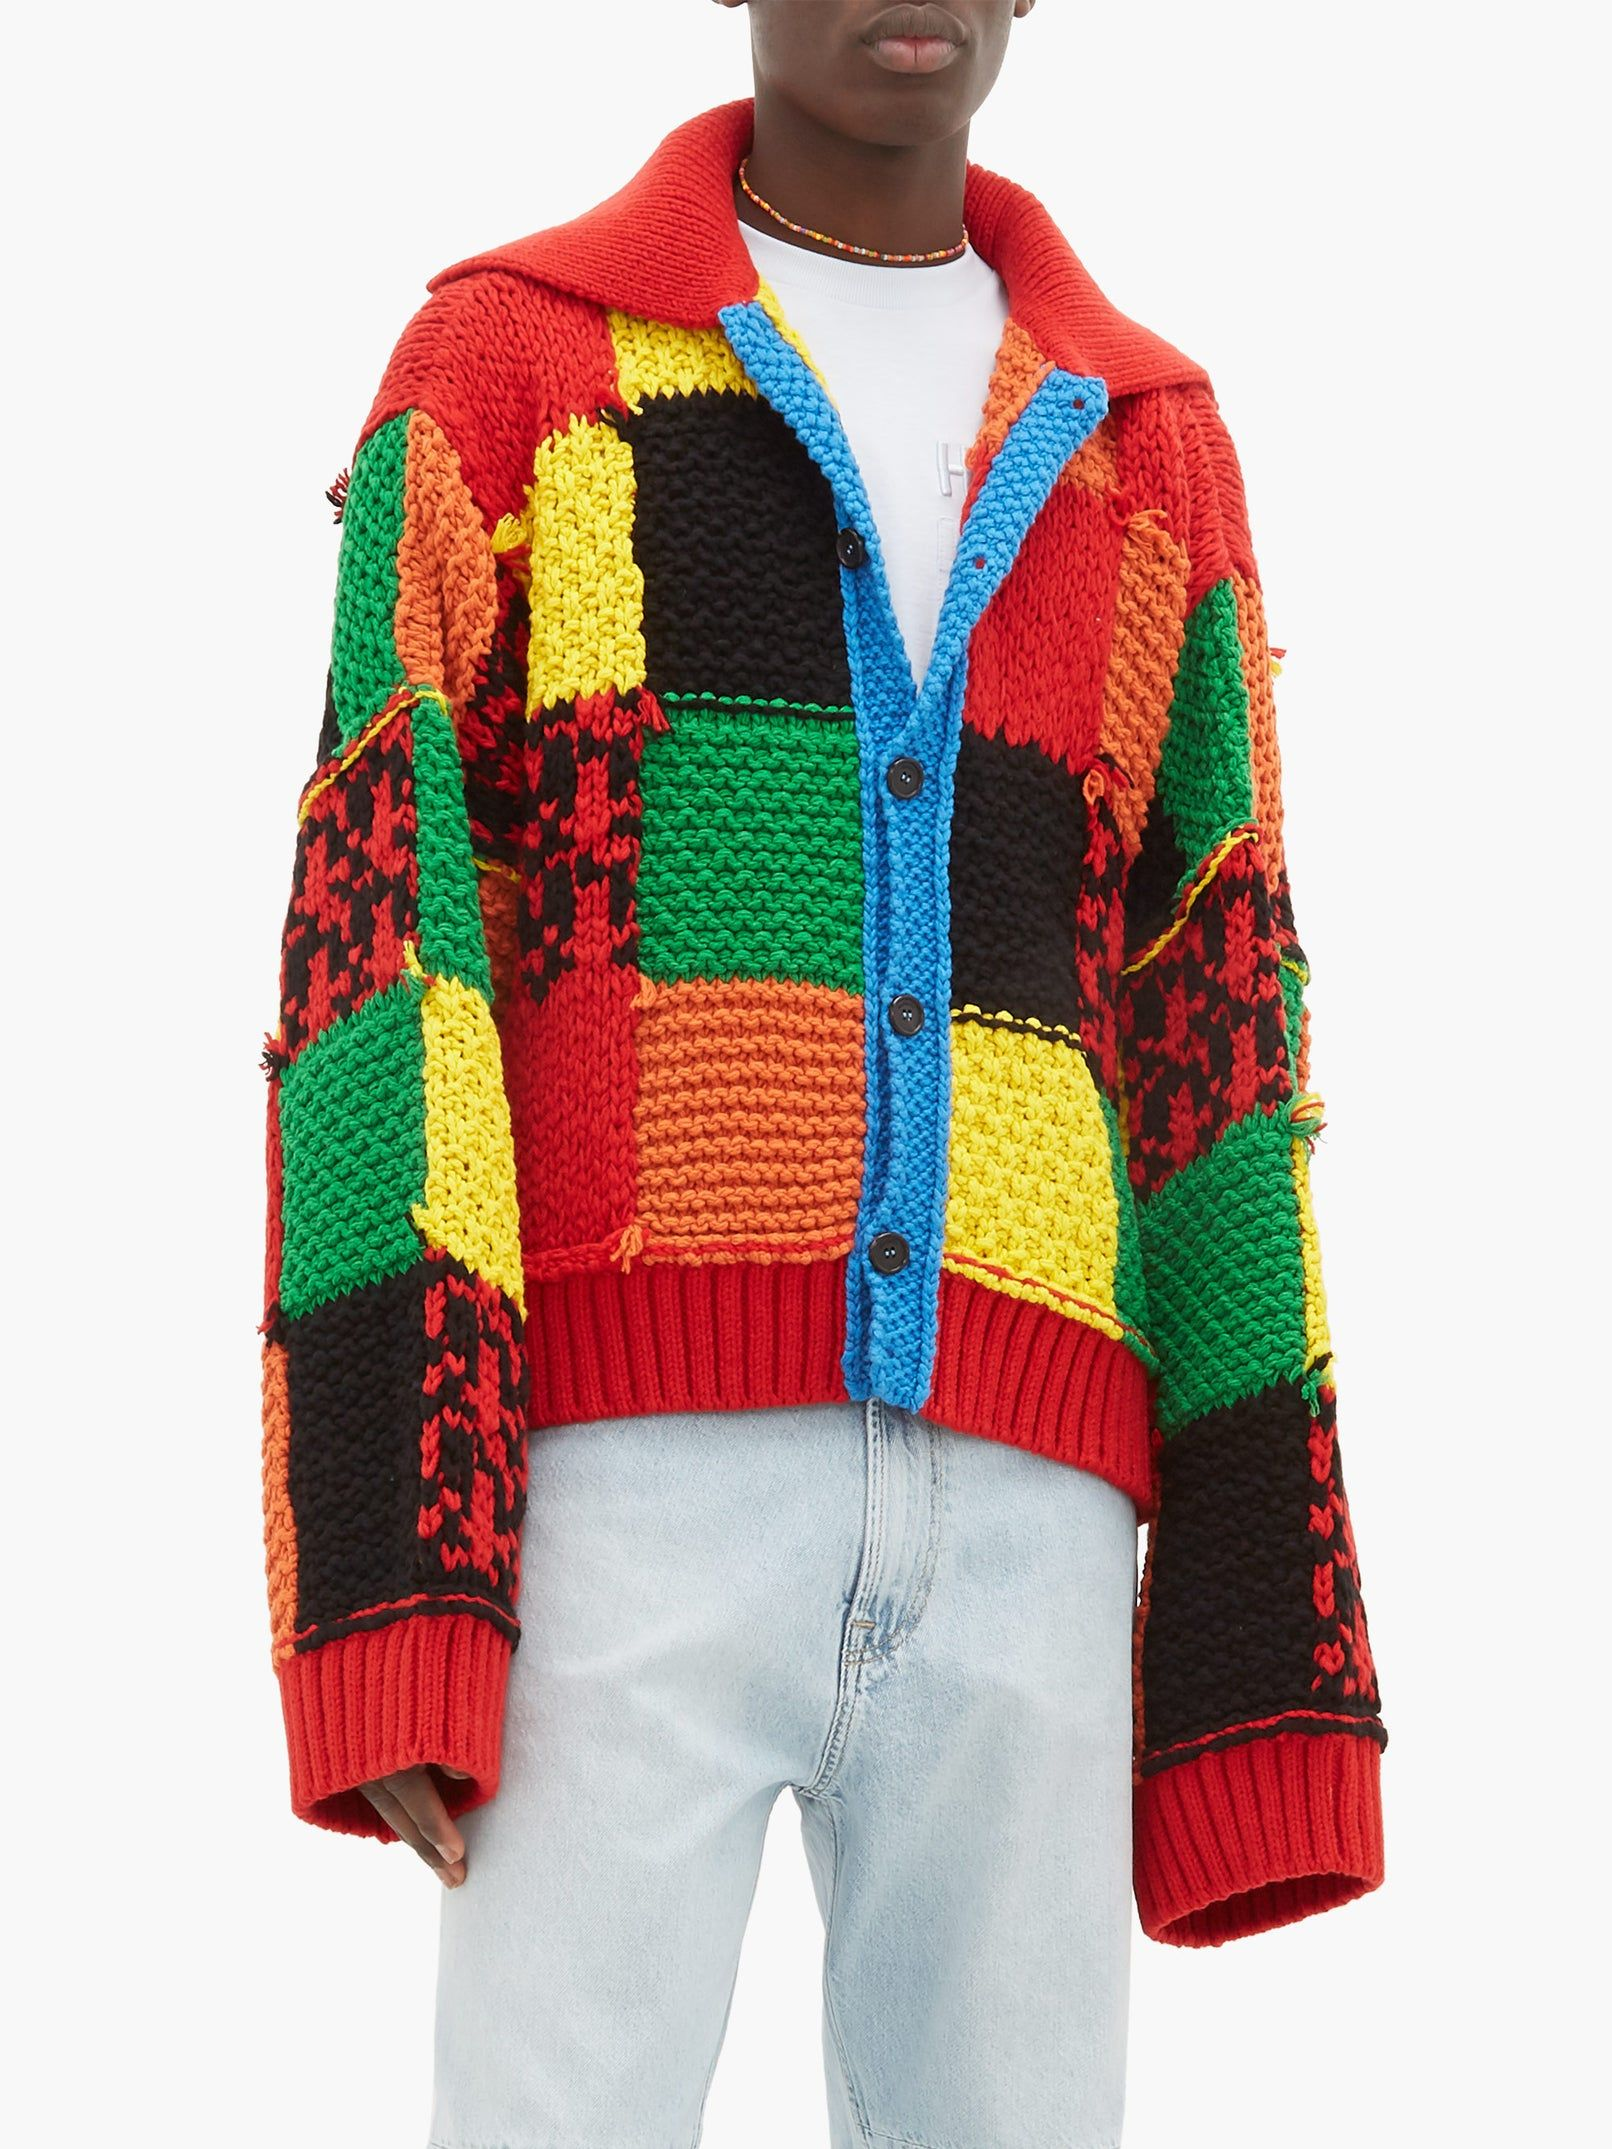 Harry Styles Cardigan Patchwork Rainbow Hand-Knit Inspired By JW Anderson